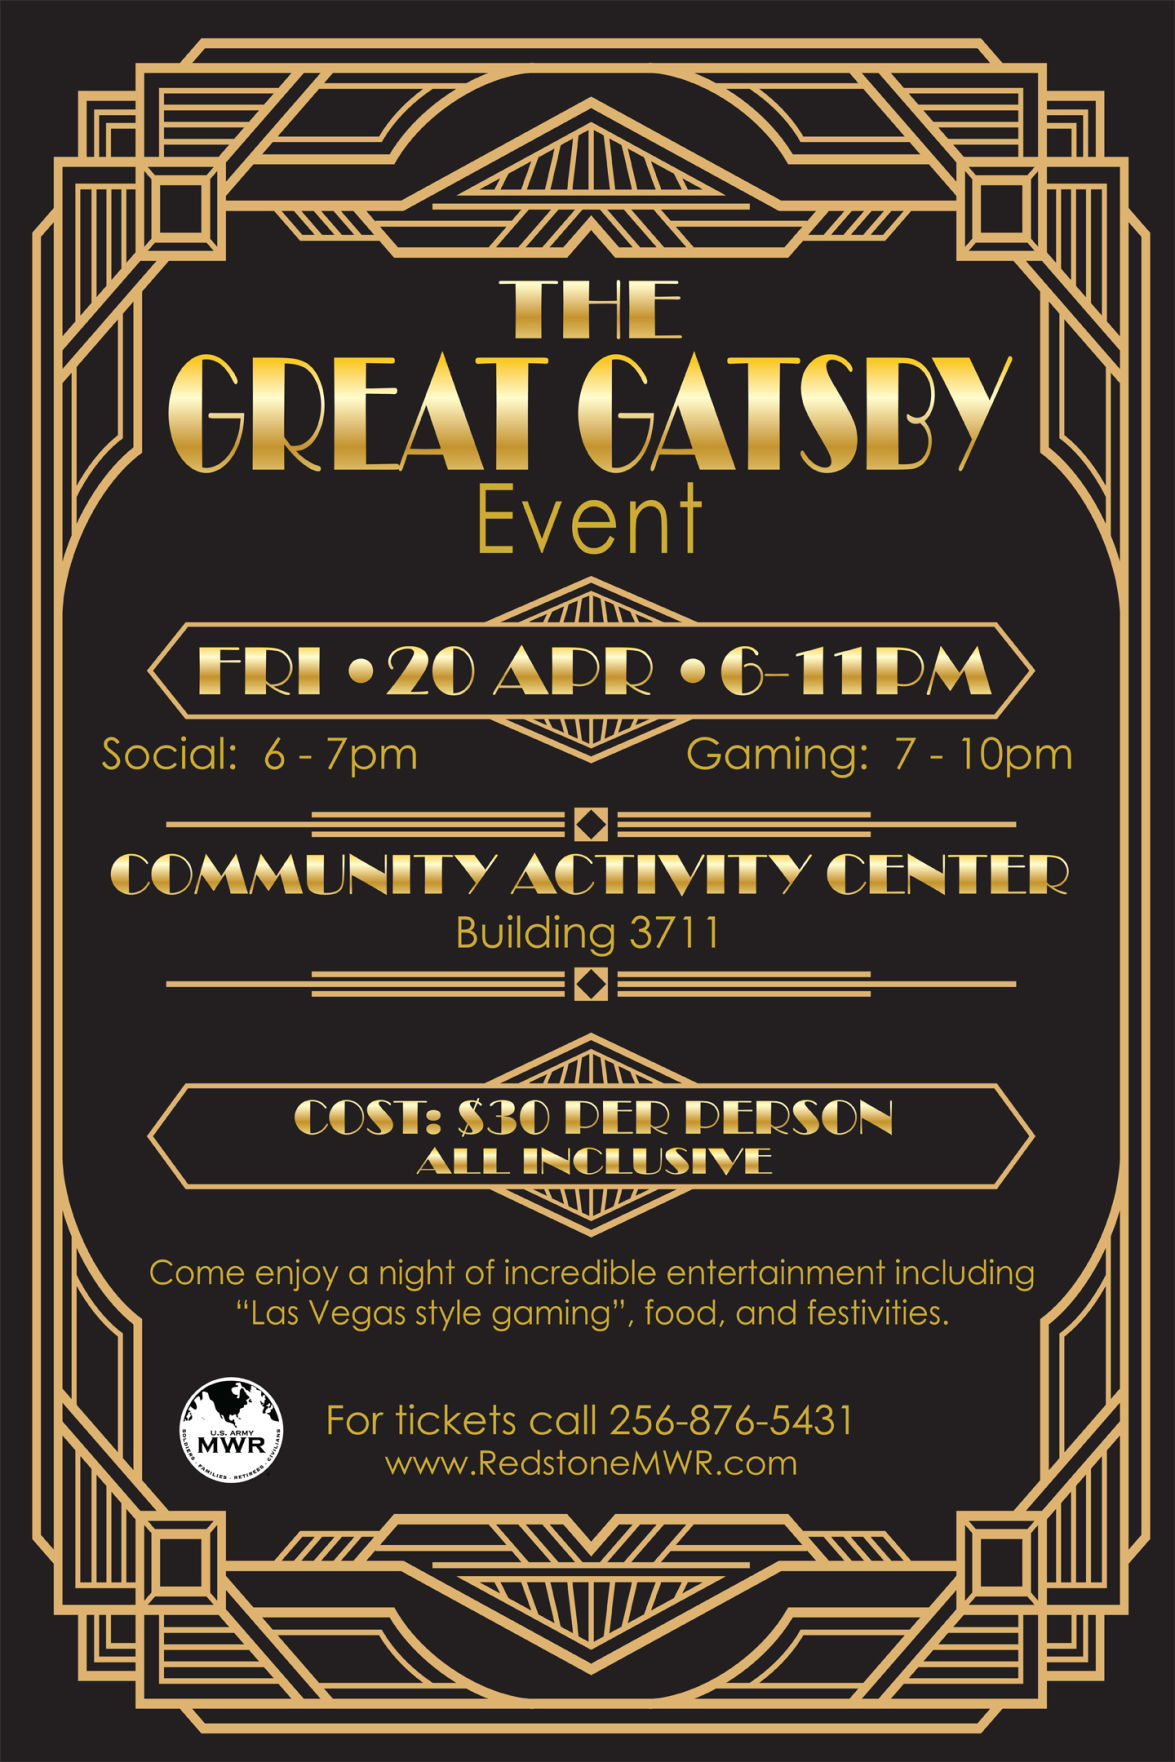 Roaring \'20s party promises great time   News   theredstonerocket.com